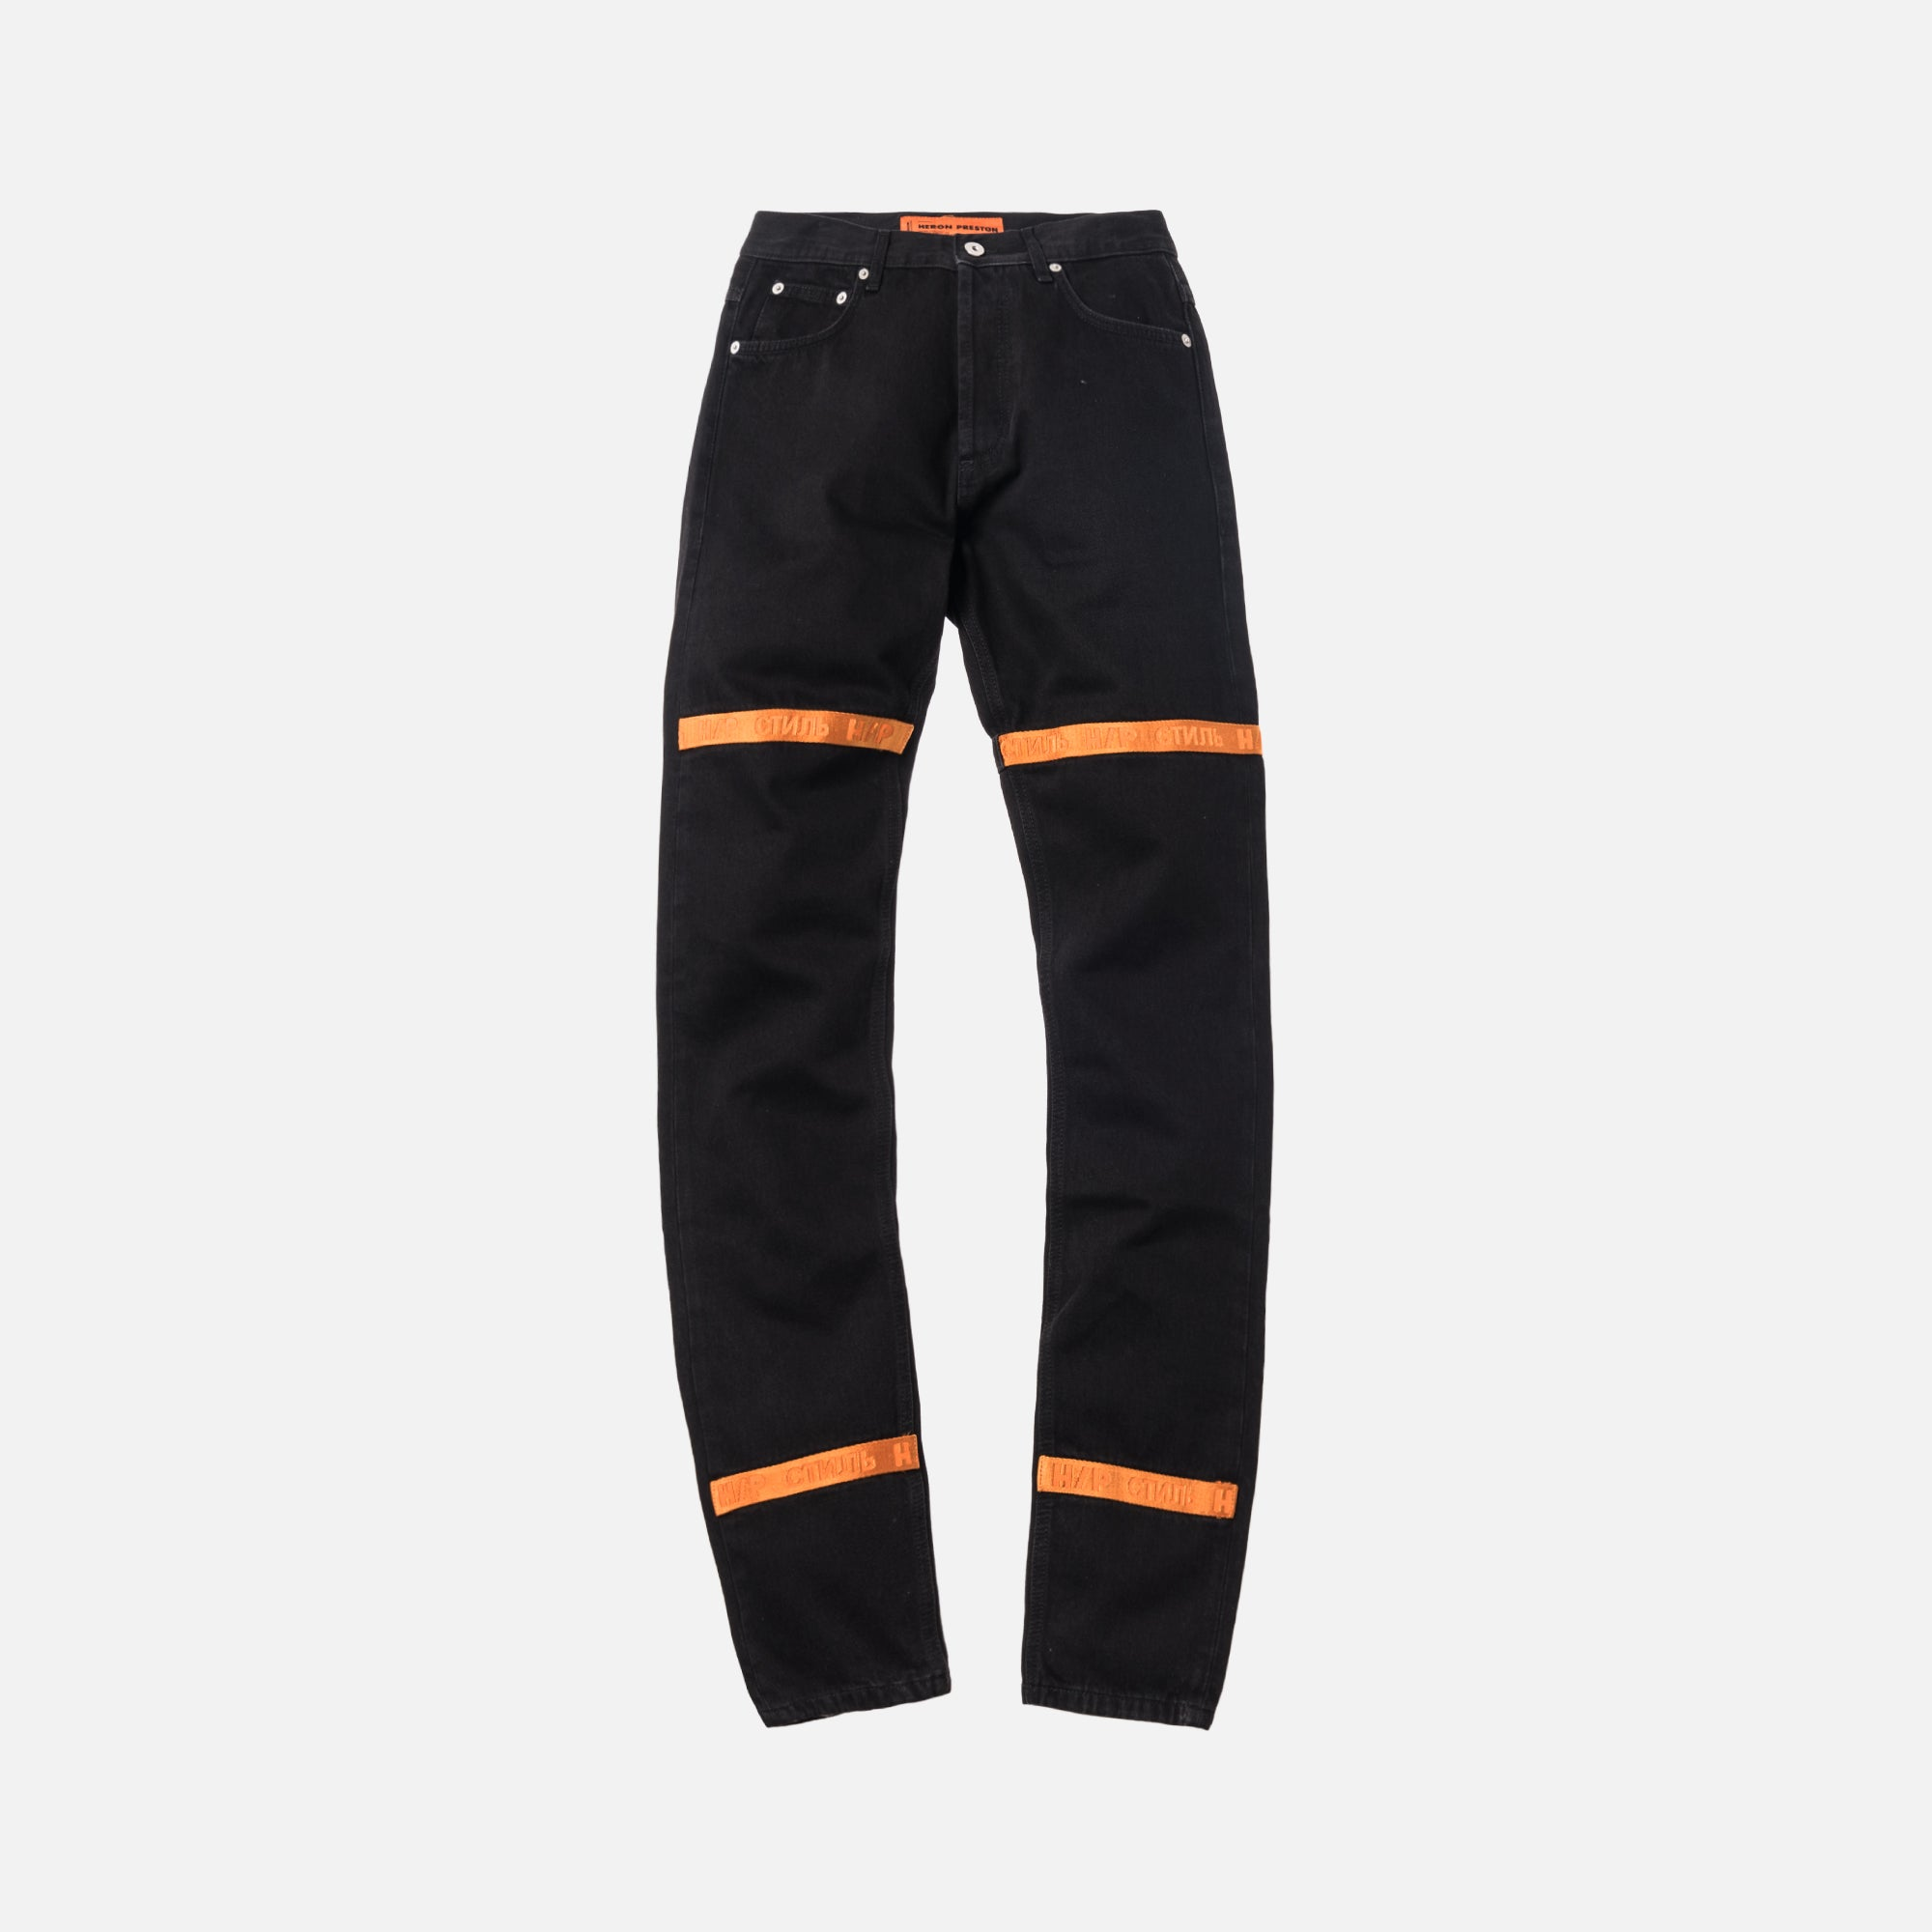 Heron Preston Tape 5-Pocket Denim Pants - Black / Orange